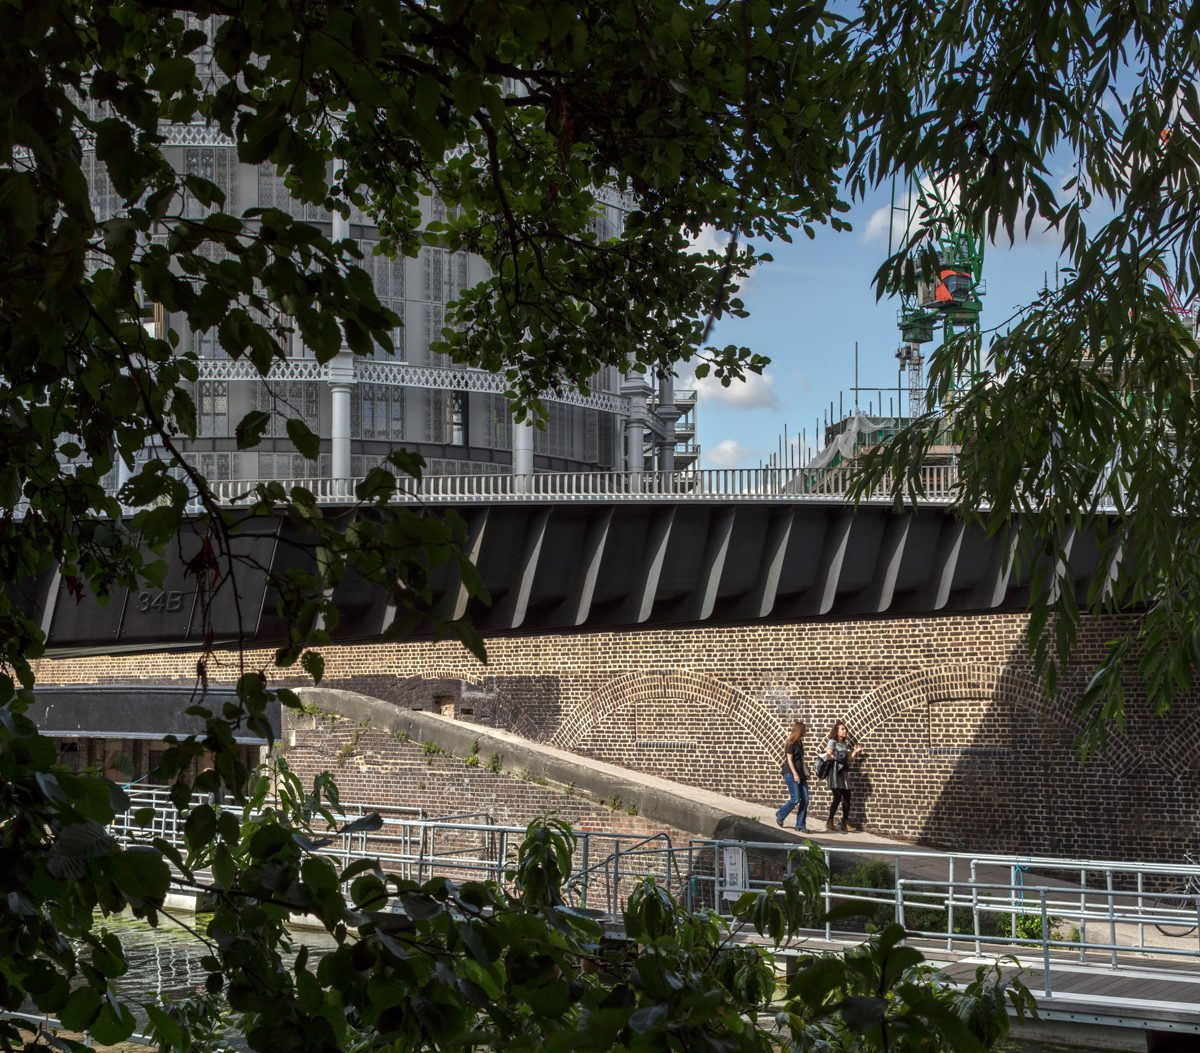 Somers Town Bridge Architecture Today